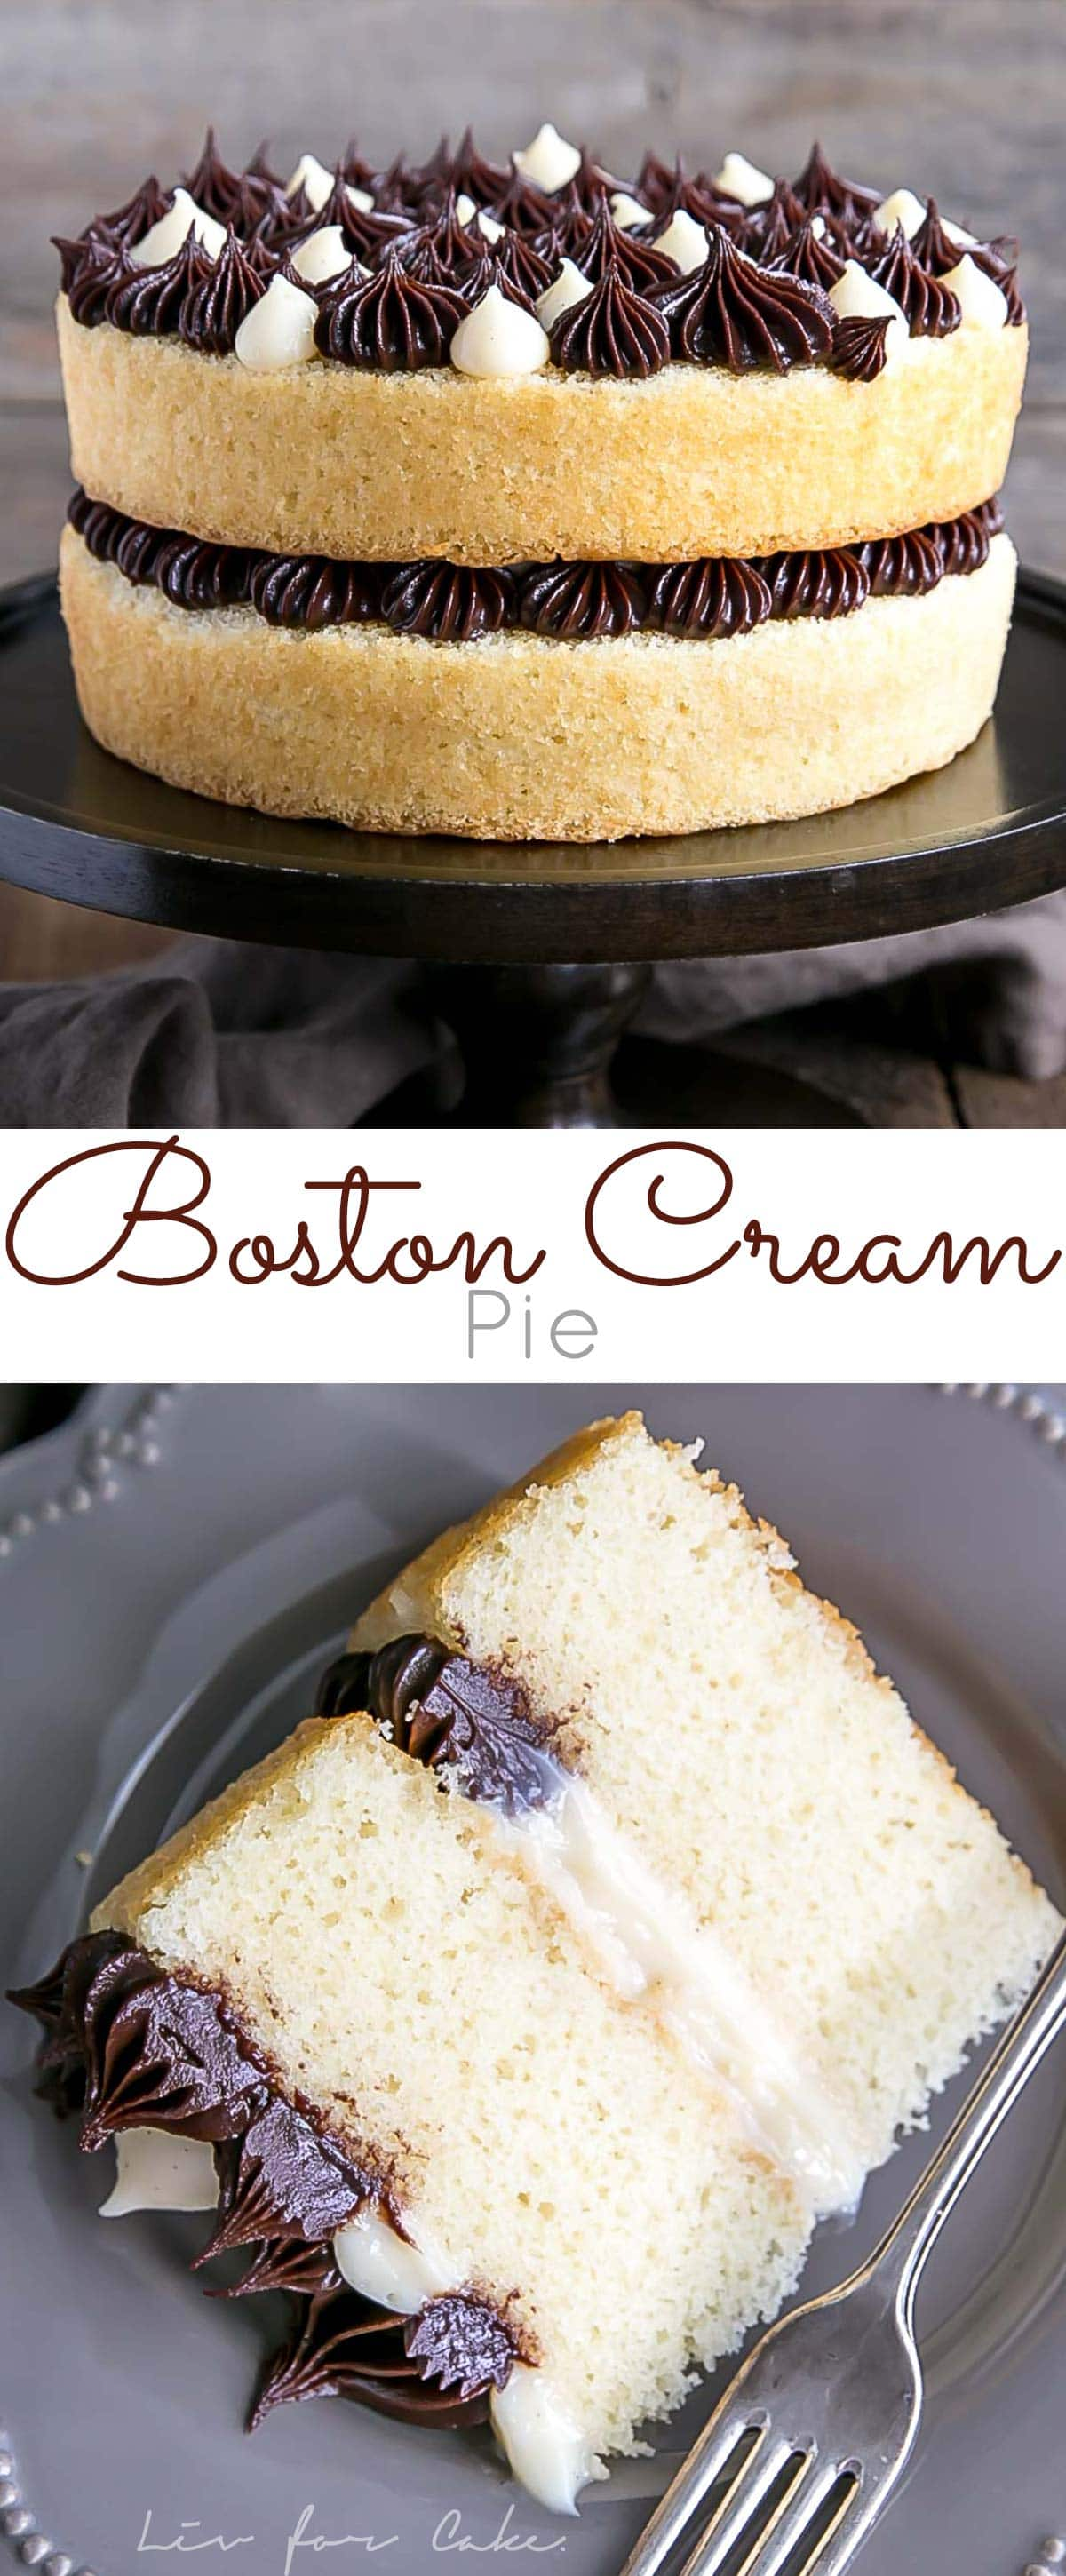 The classic Boston Cream Pie gets a modern makeover! Vanilla cake layers, creamy custard, and a rich chocolate ganache.